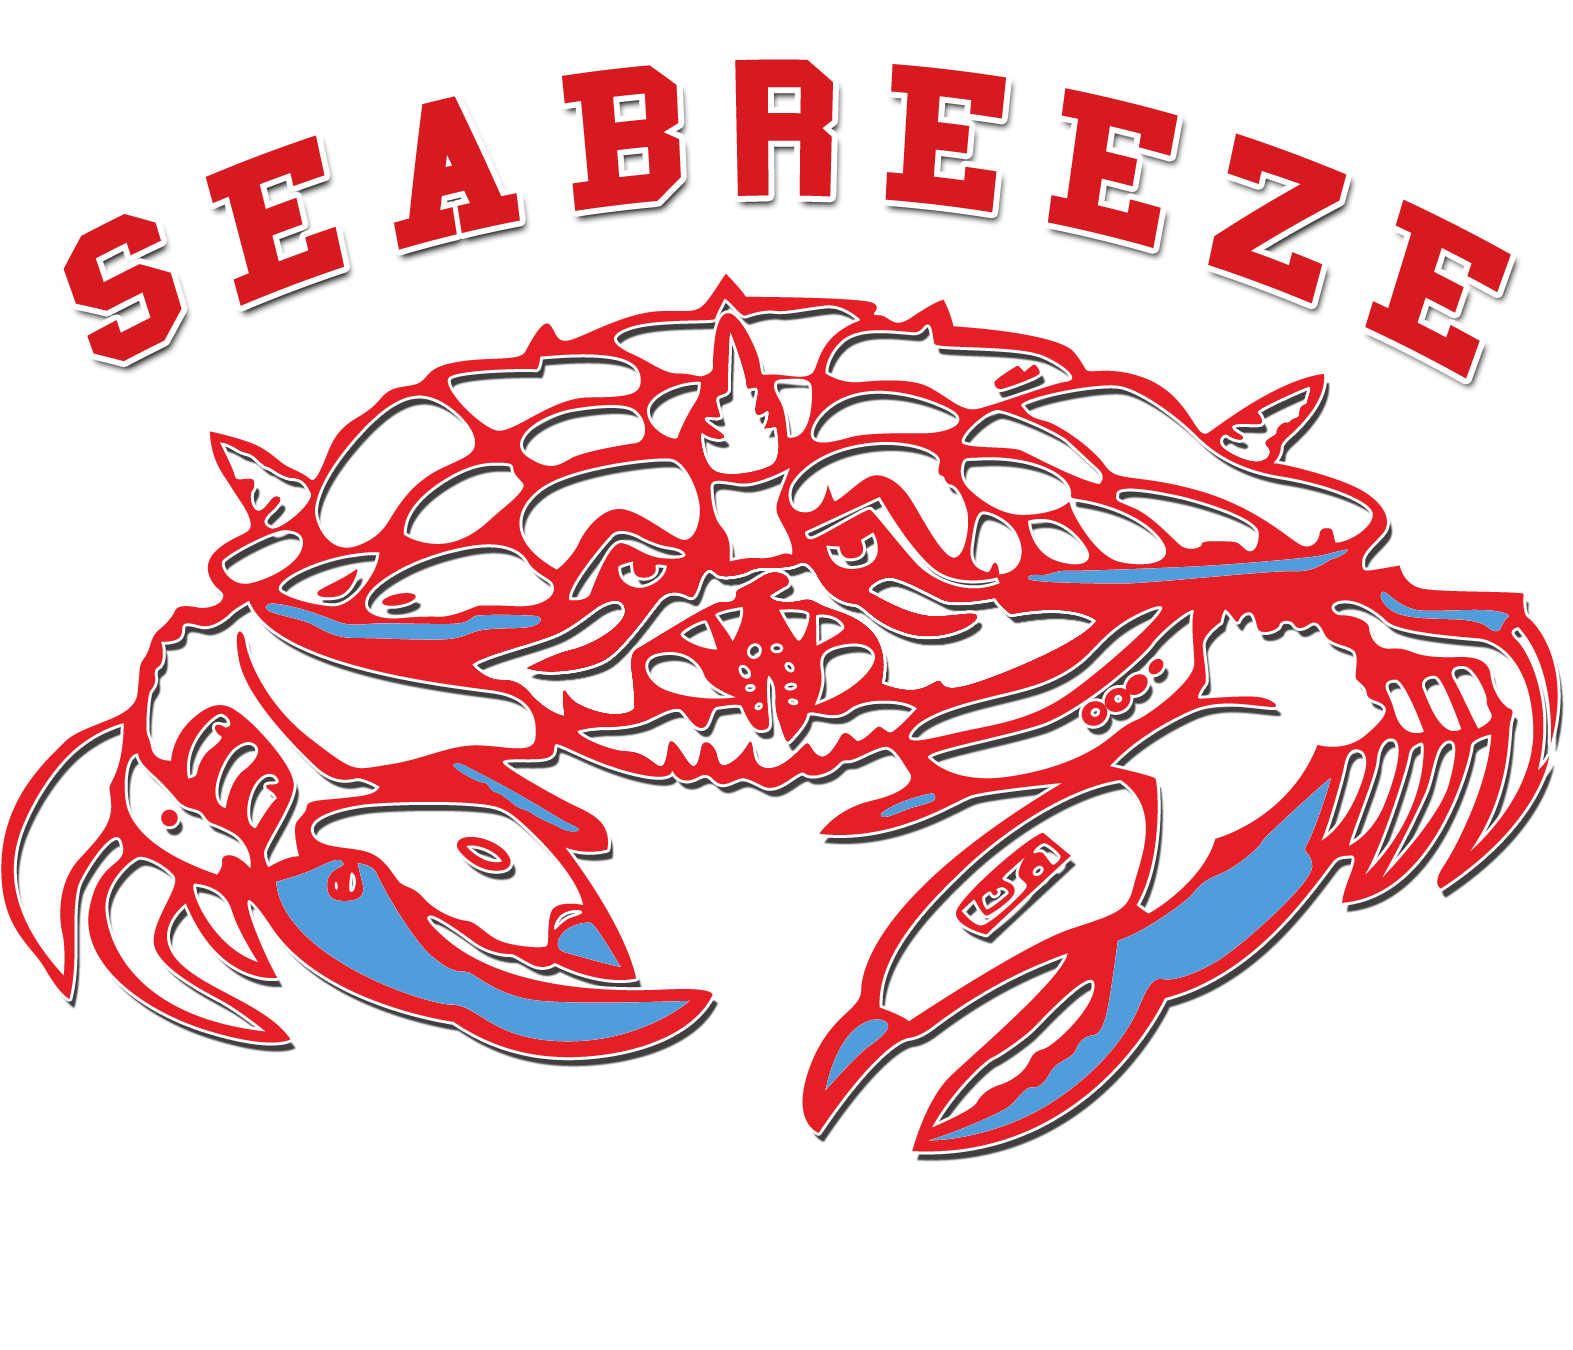 Red-Blue SEABREEZE sandcrab